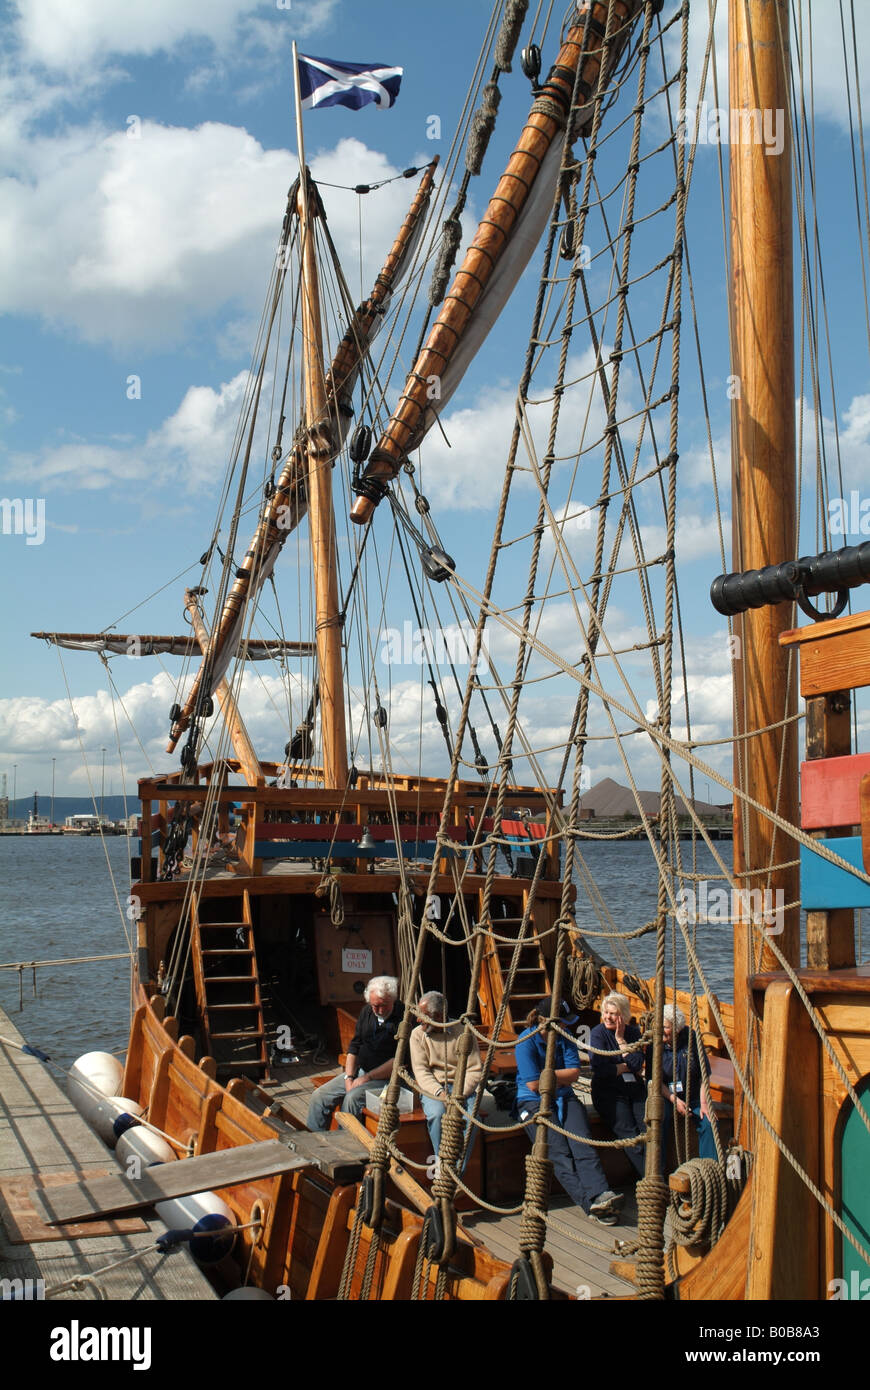 The deck of the caravel the 'Matthew of Bristol' as seen from Leith Docks, Edinburgh. - Stock Image